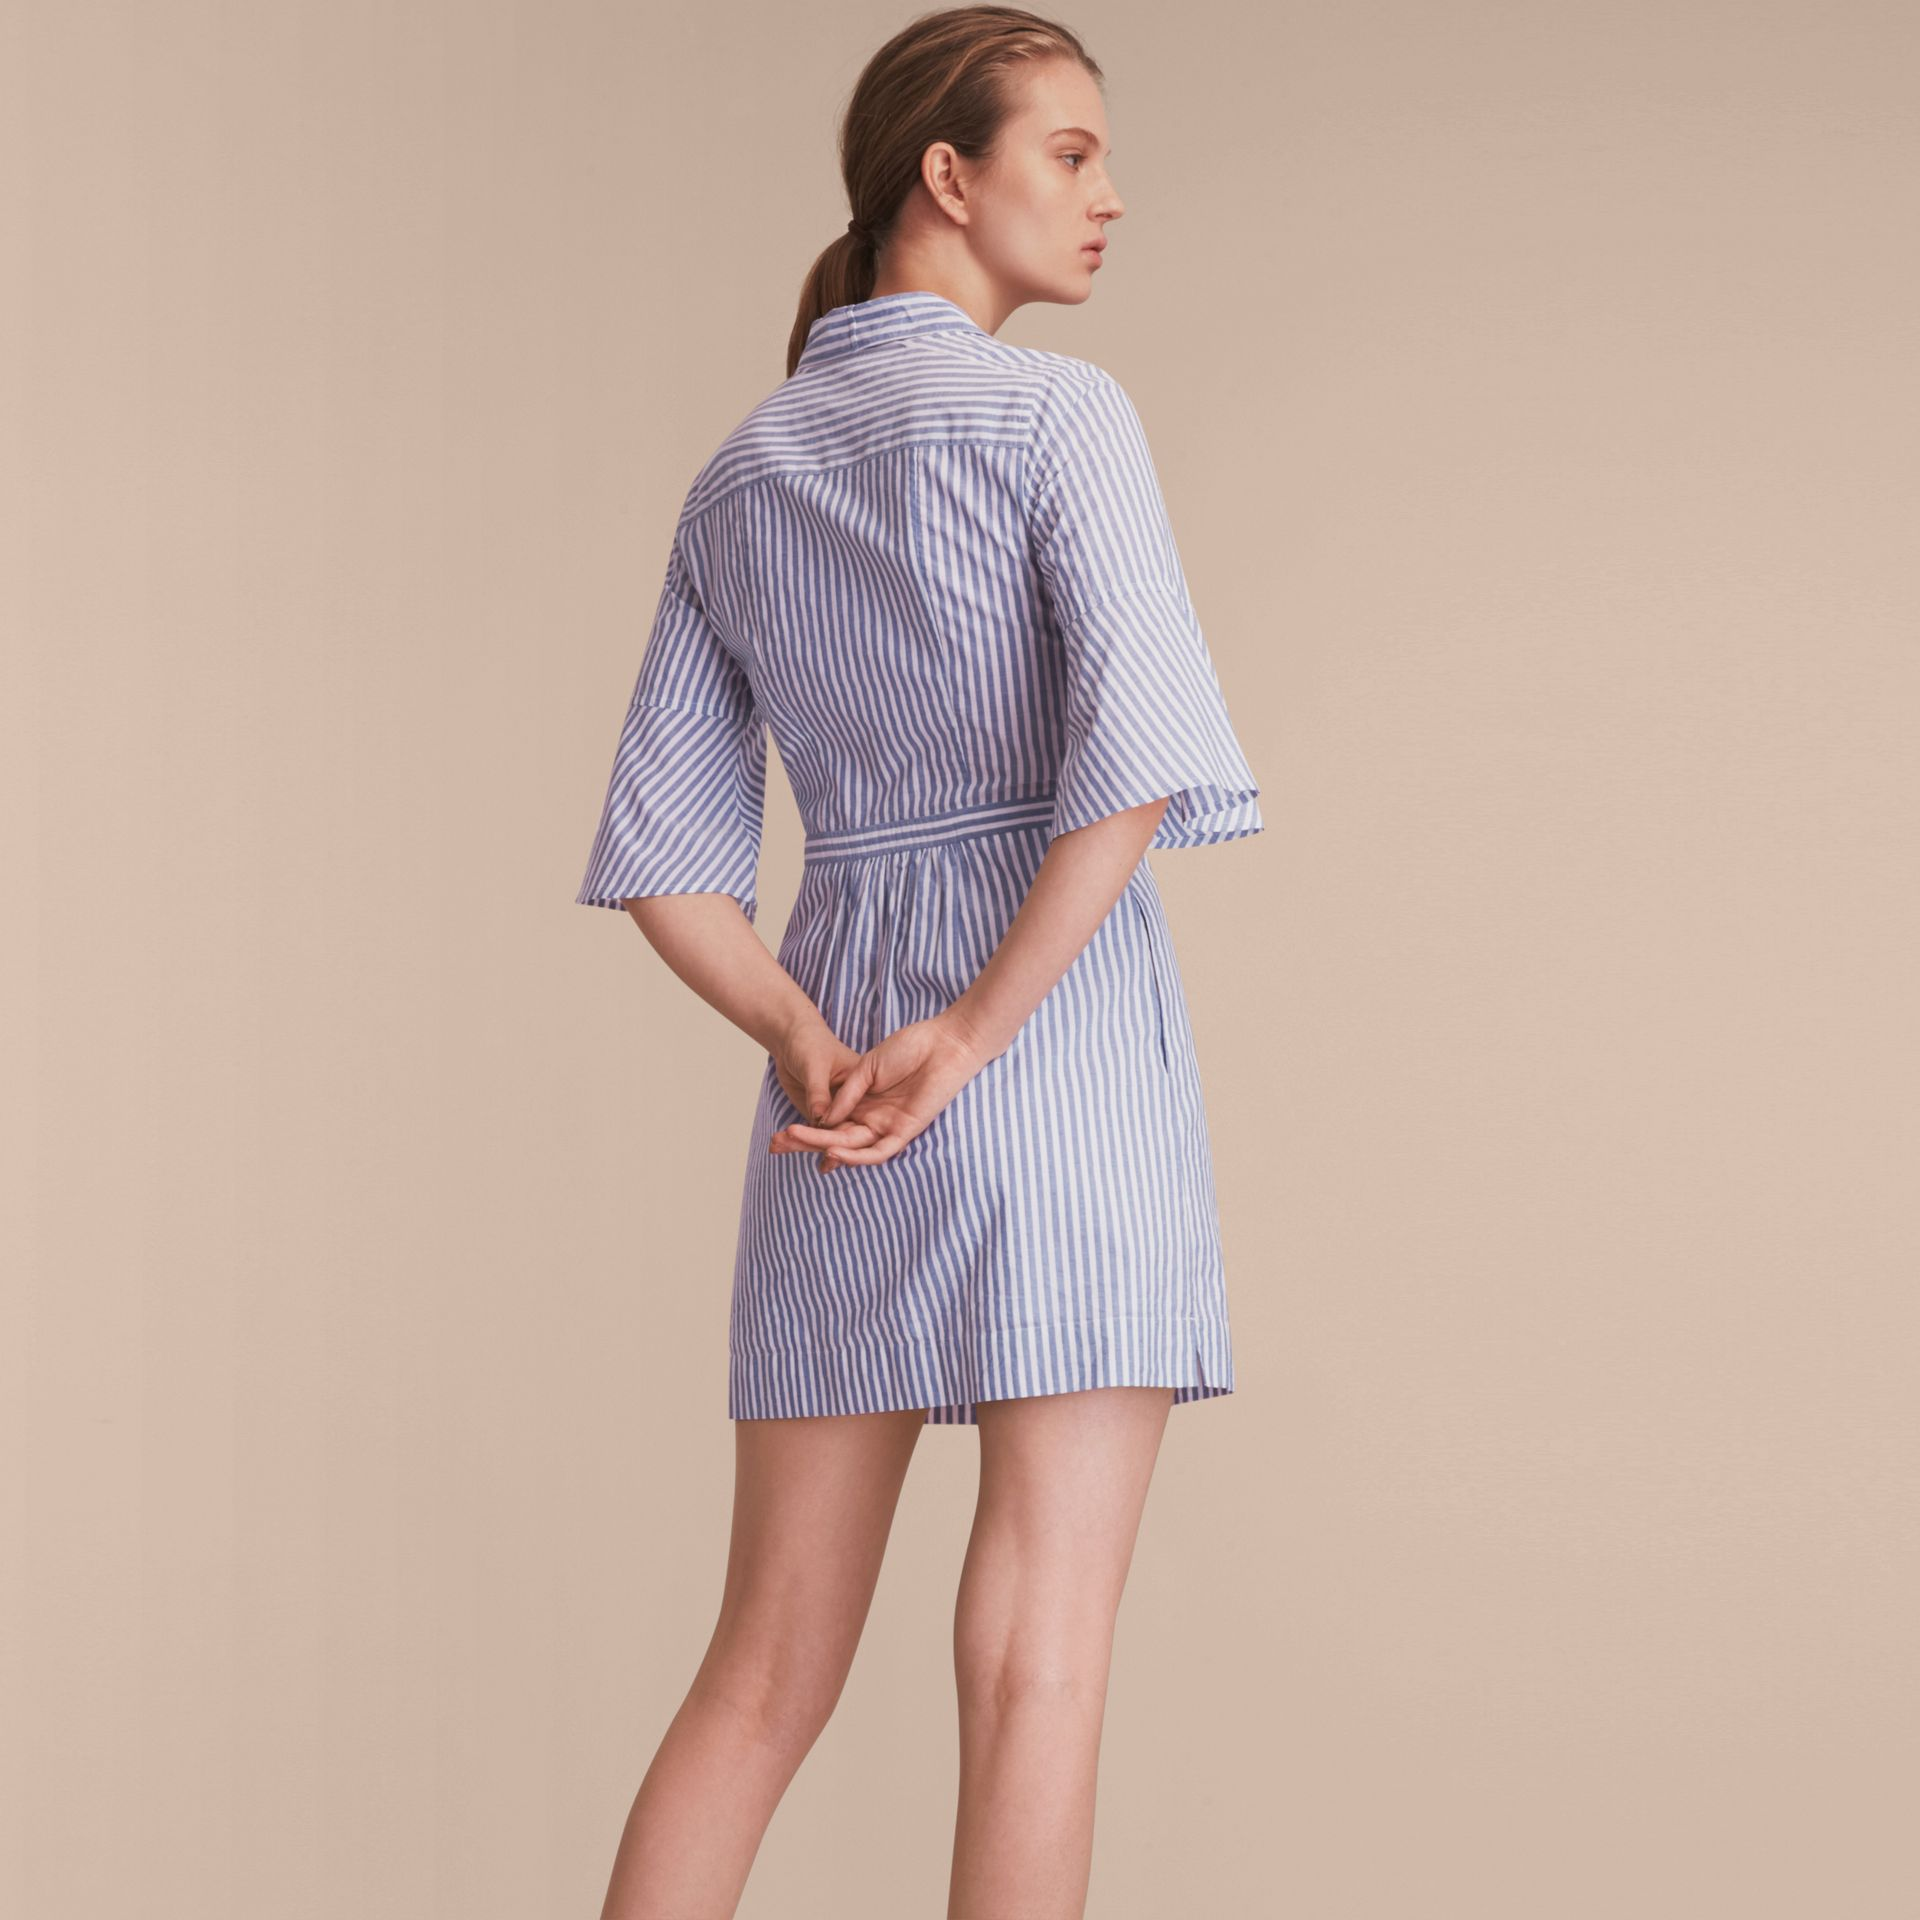 Bell-sleeve Striped Shirt Dress with Tie Neck in Pale Blue/white - Women | Burberry - gallery image 2